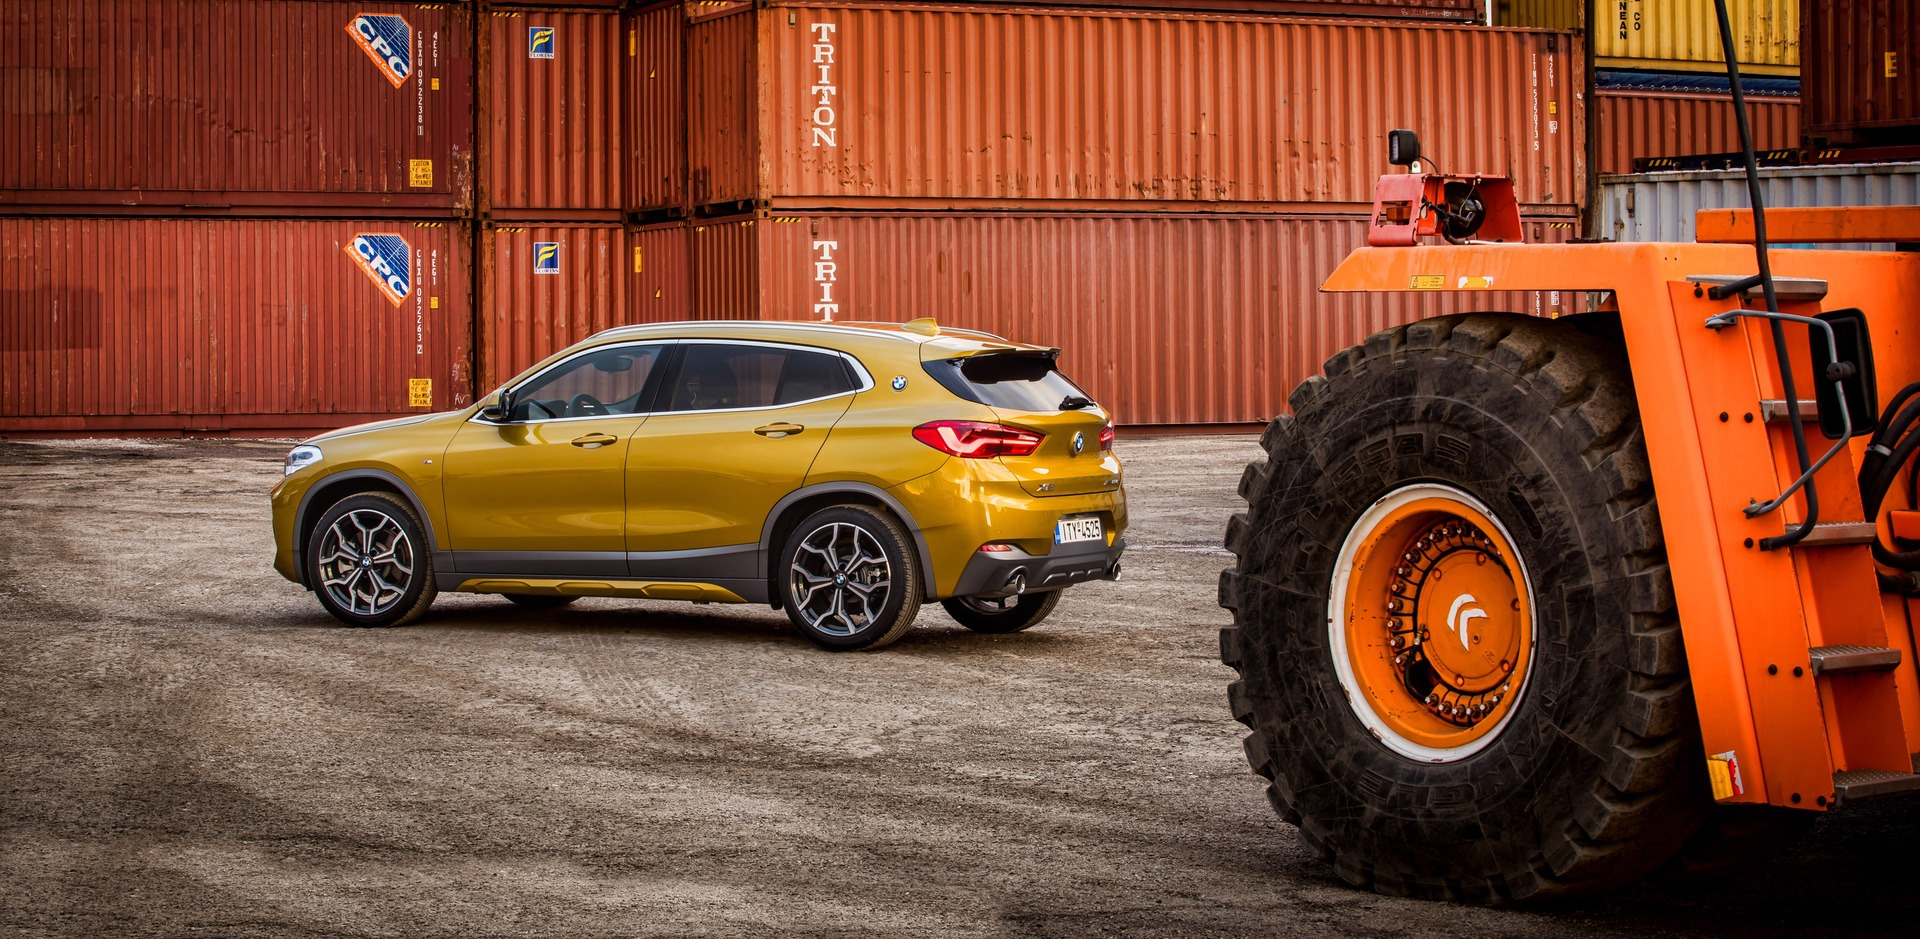 BMW_X2_Greek_presskit_0085